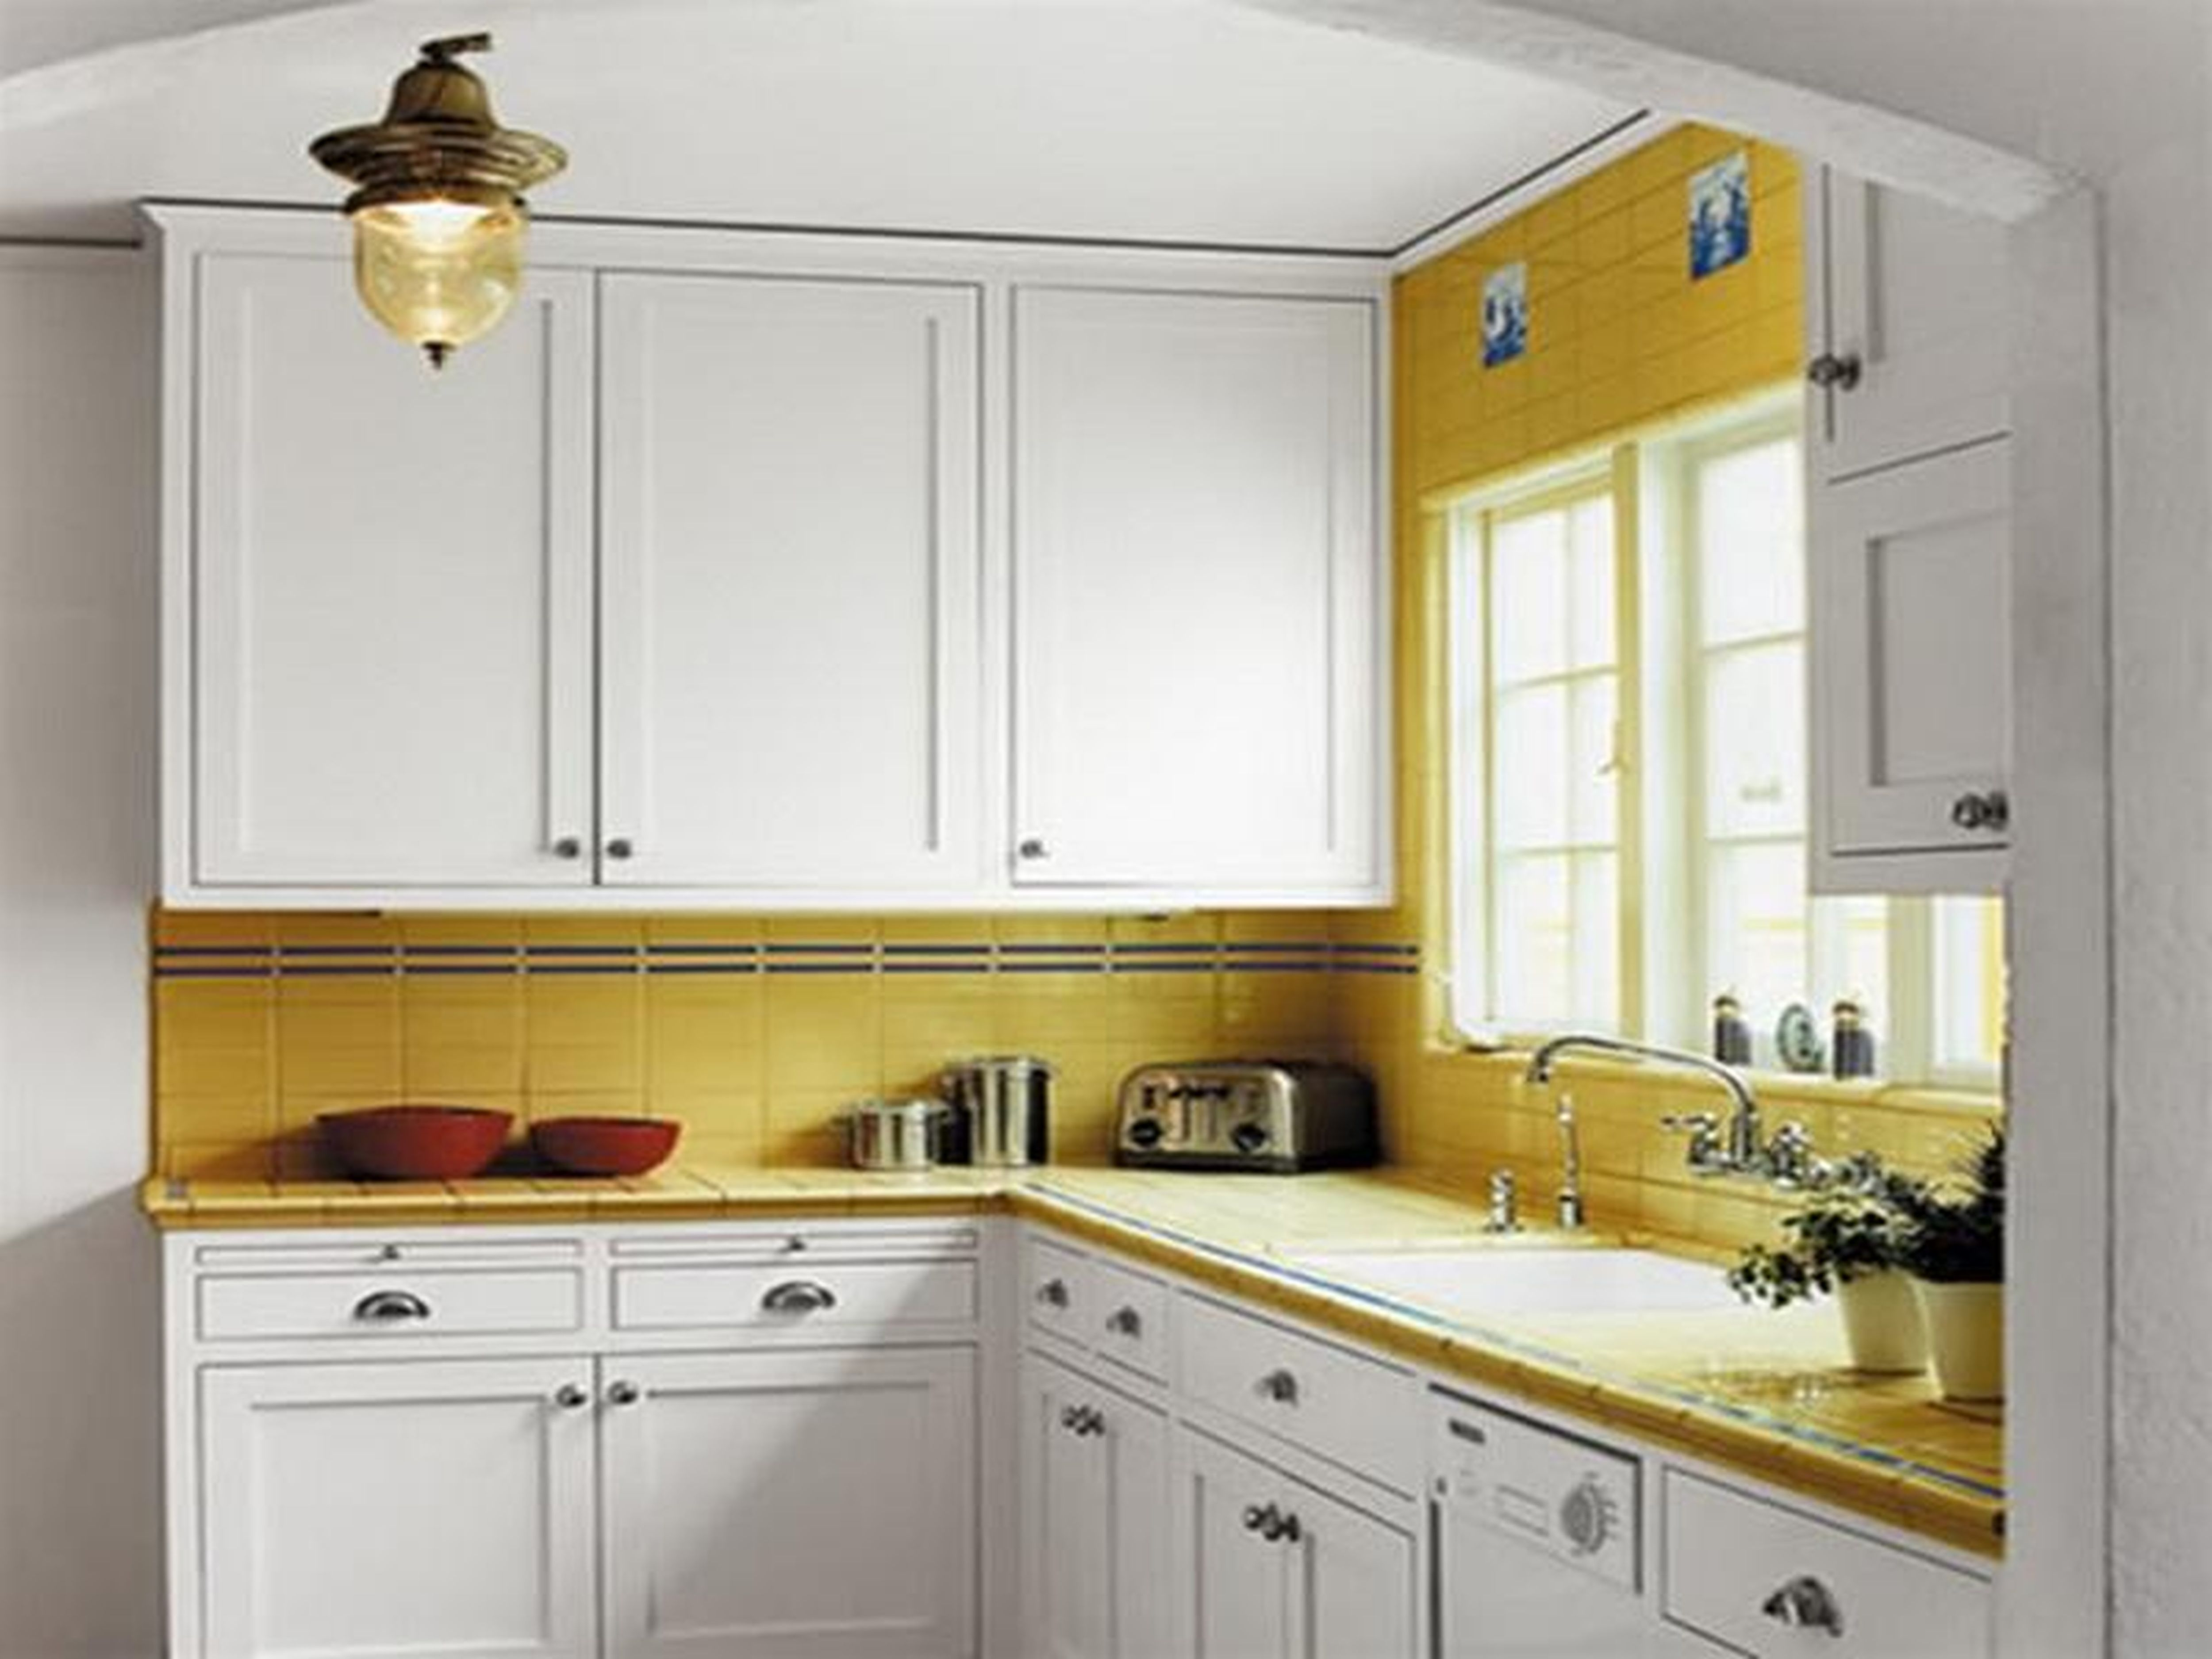 Magnificent ikea kitchen designs with brown varnished wooden